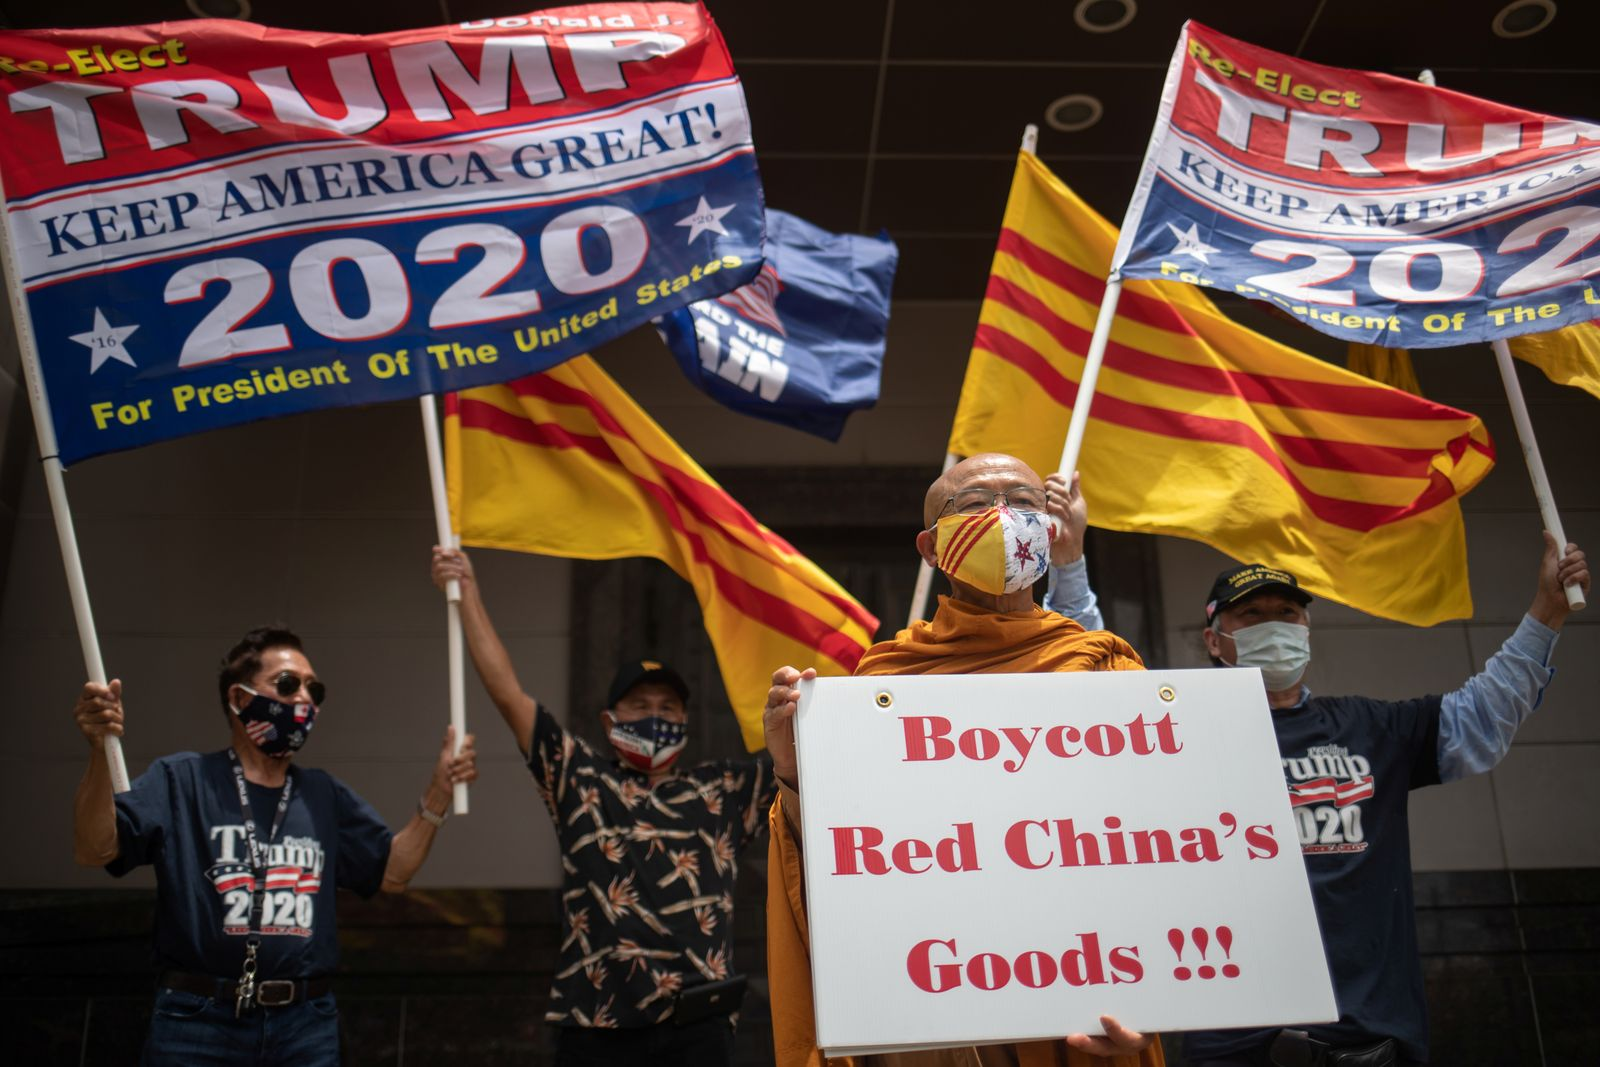 Activists against the Chinese Communist Party protest outside of China?s Consulate in Houston, Texas